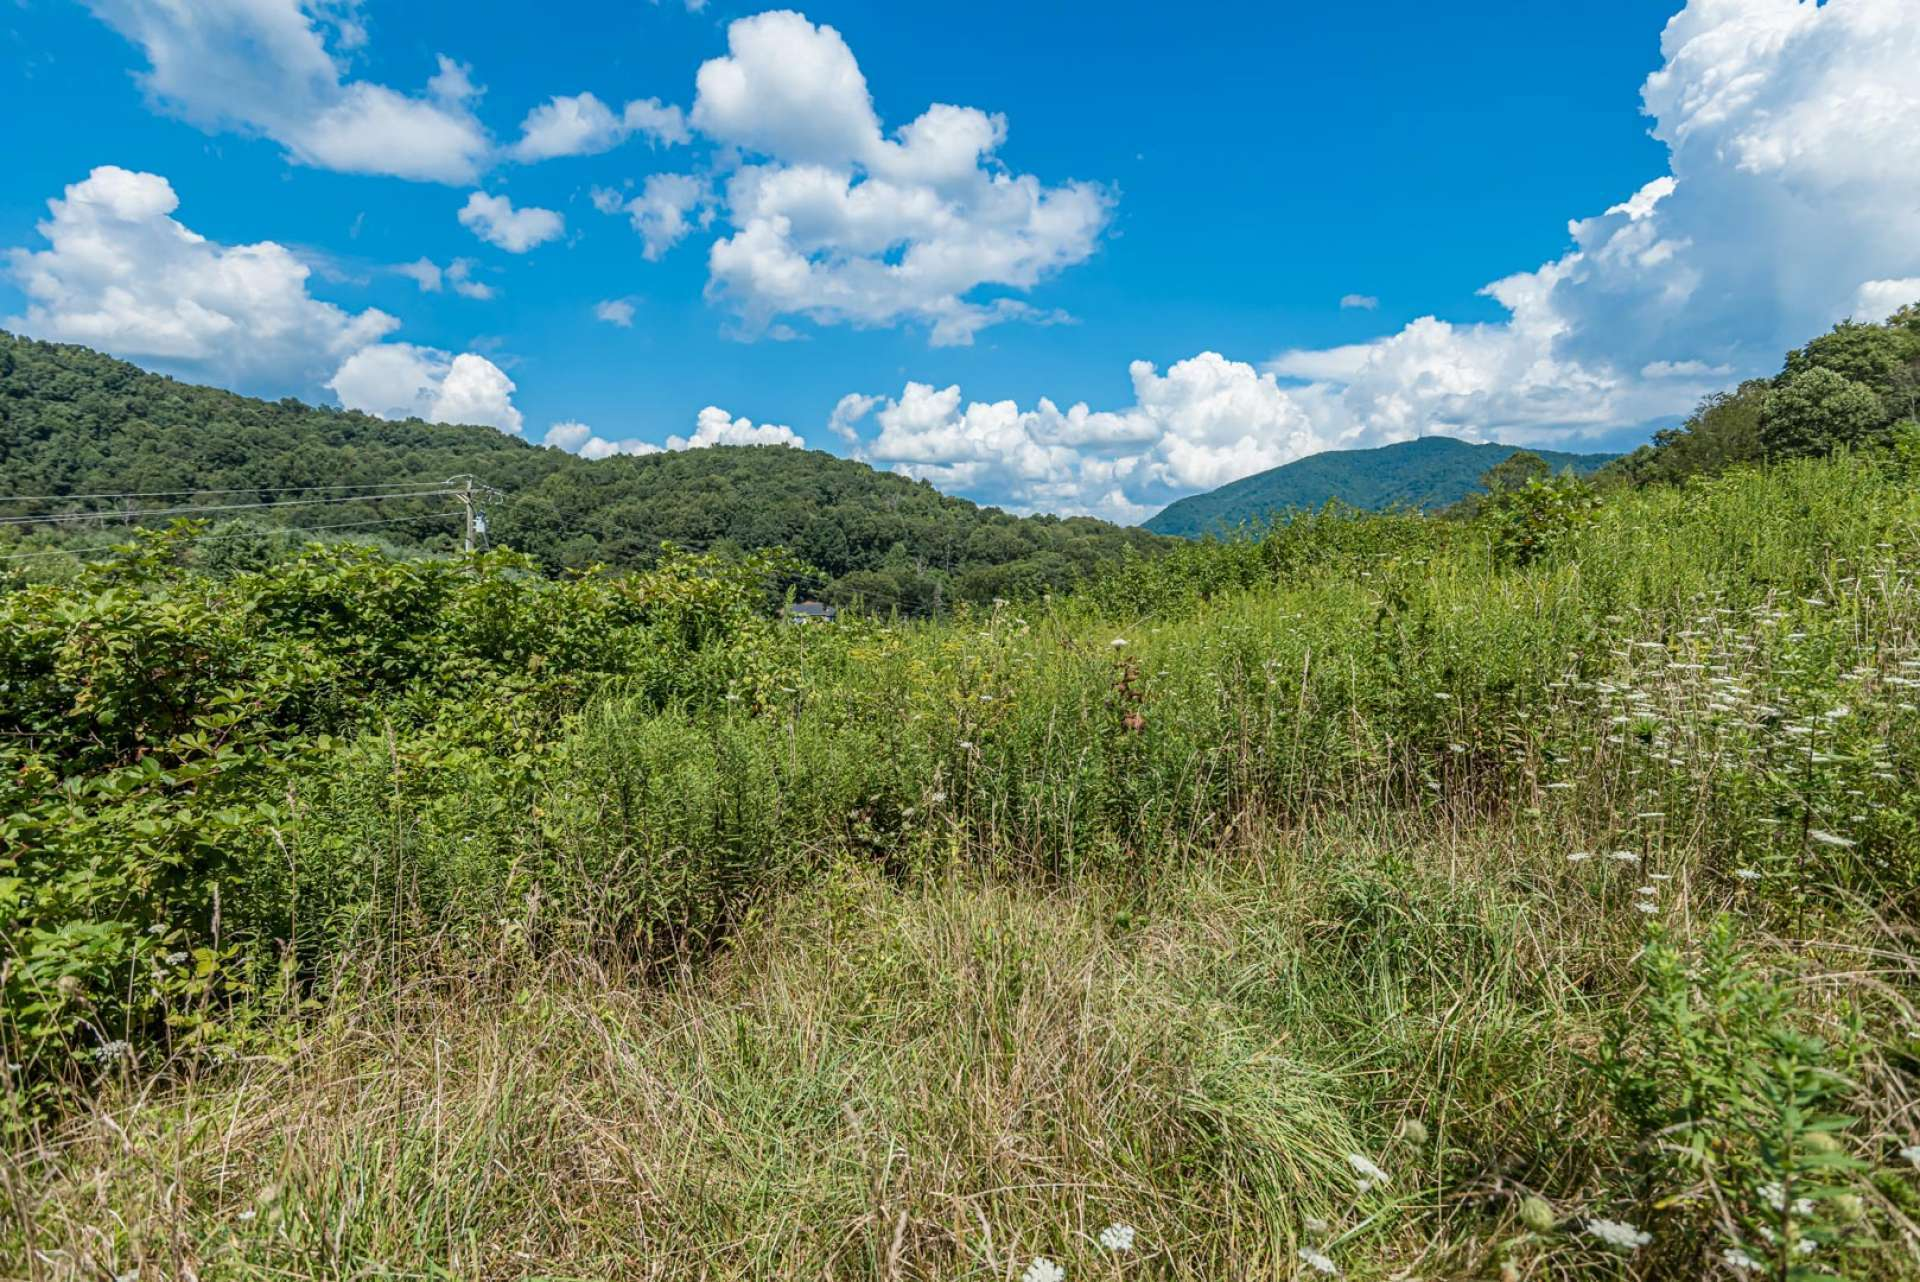 Imagine your dream NC Mountain home or cabin constructed here on this spot where you can enjoy the fresh mountain air, sounds of Nature,  and the long range views. This stunning tract is offered at $68,500. Call for information on listing  L239.